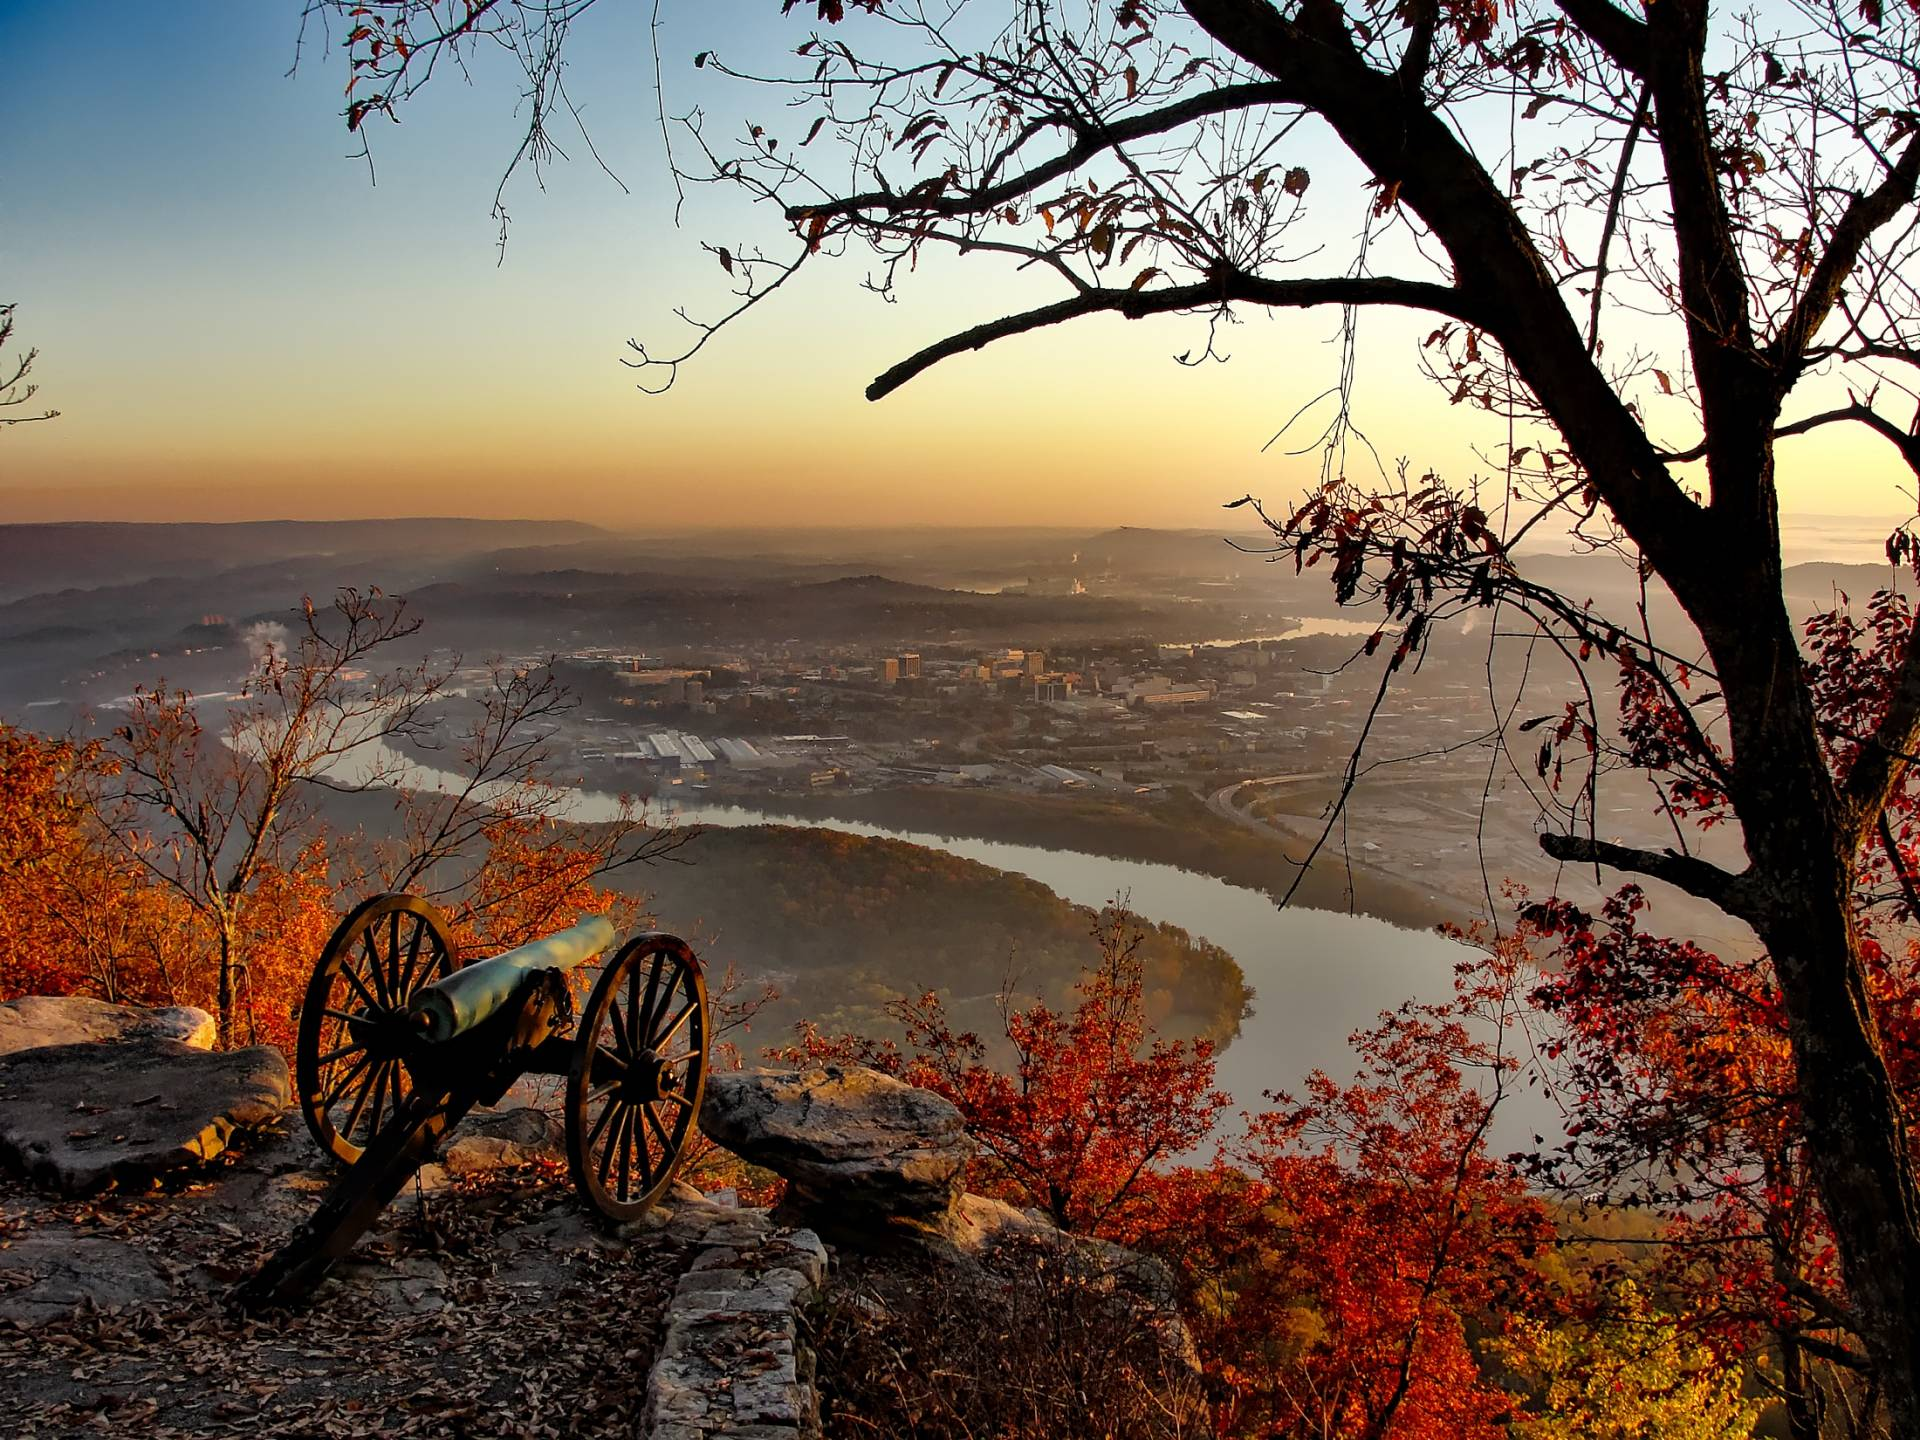 chattanooga tennessee with cannon